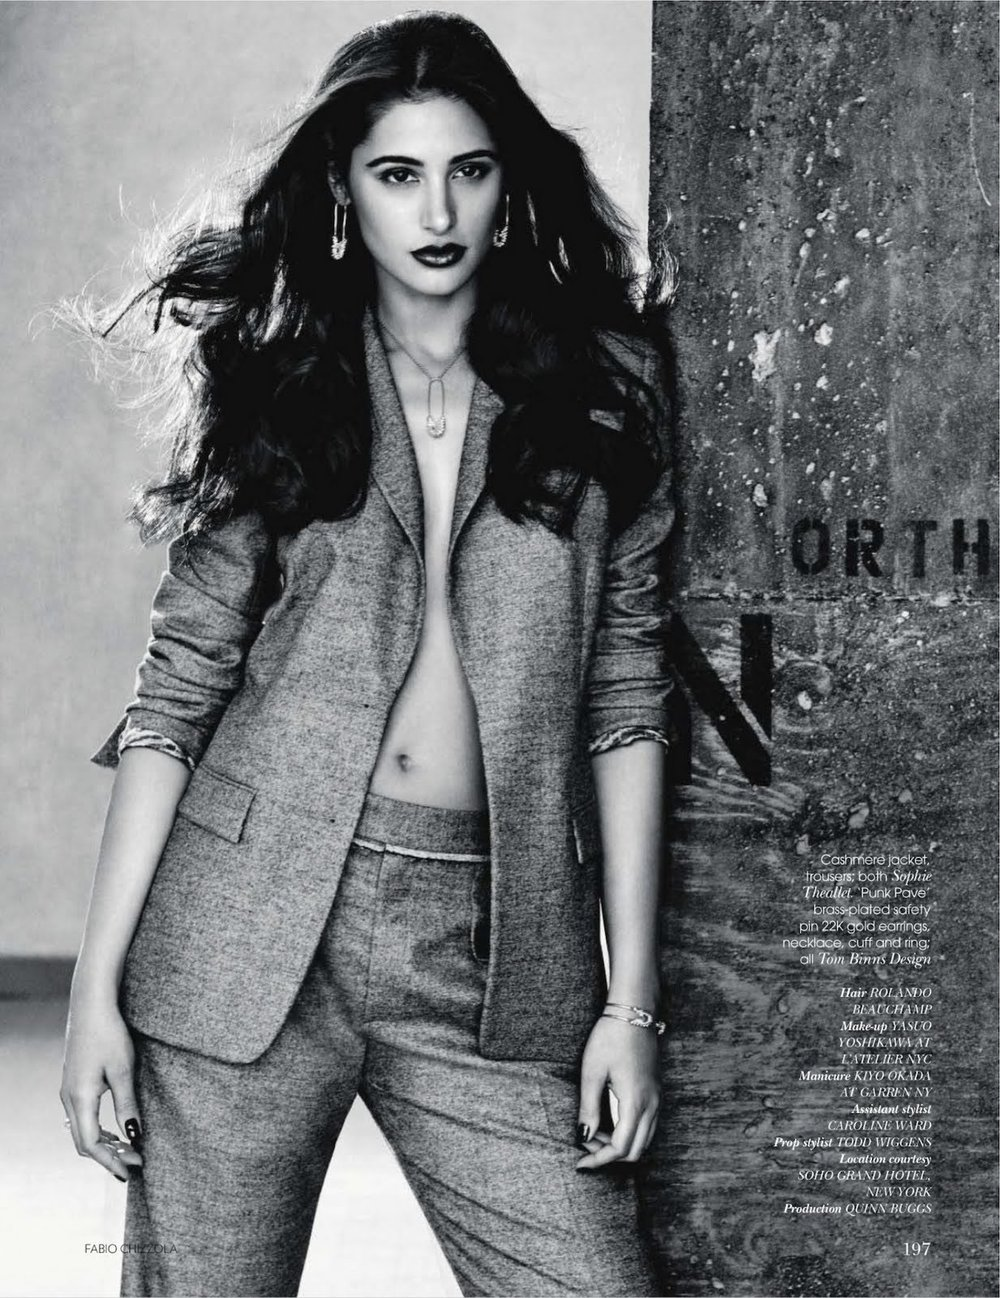 Nargis Fakhri, photo by Fabio Chizzola - VOGUE India - September 2011